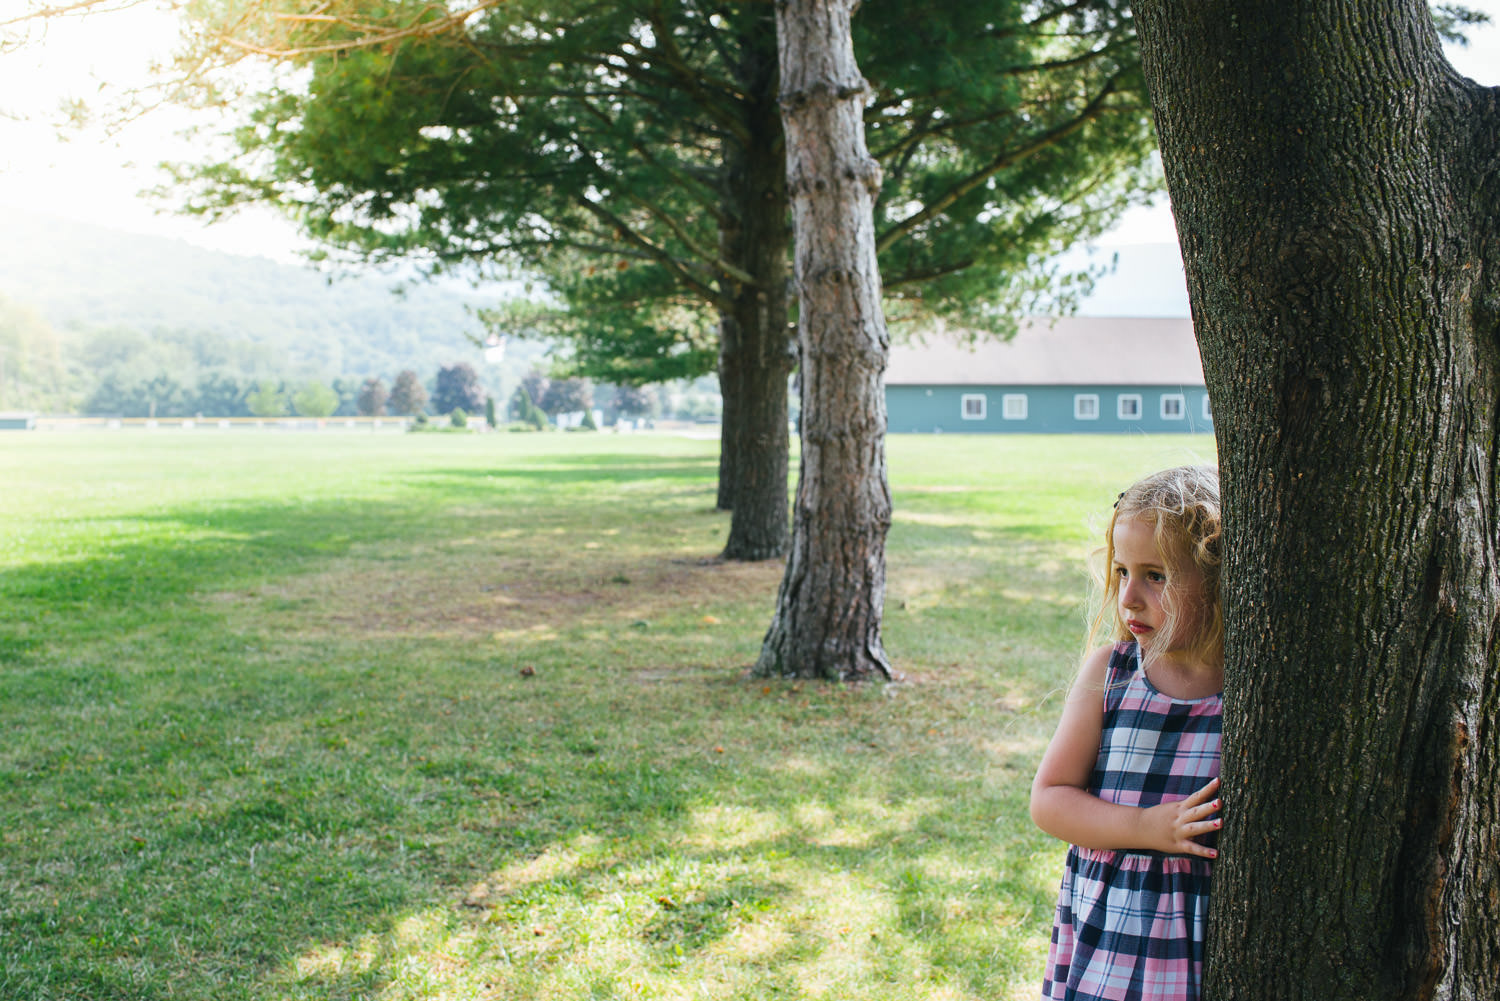 A little girl pouts next to a tree at the park.